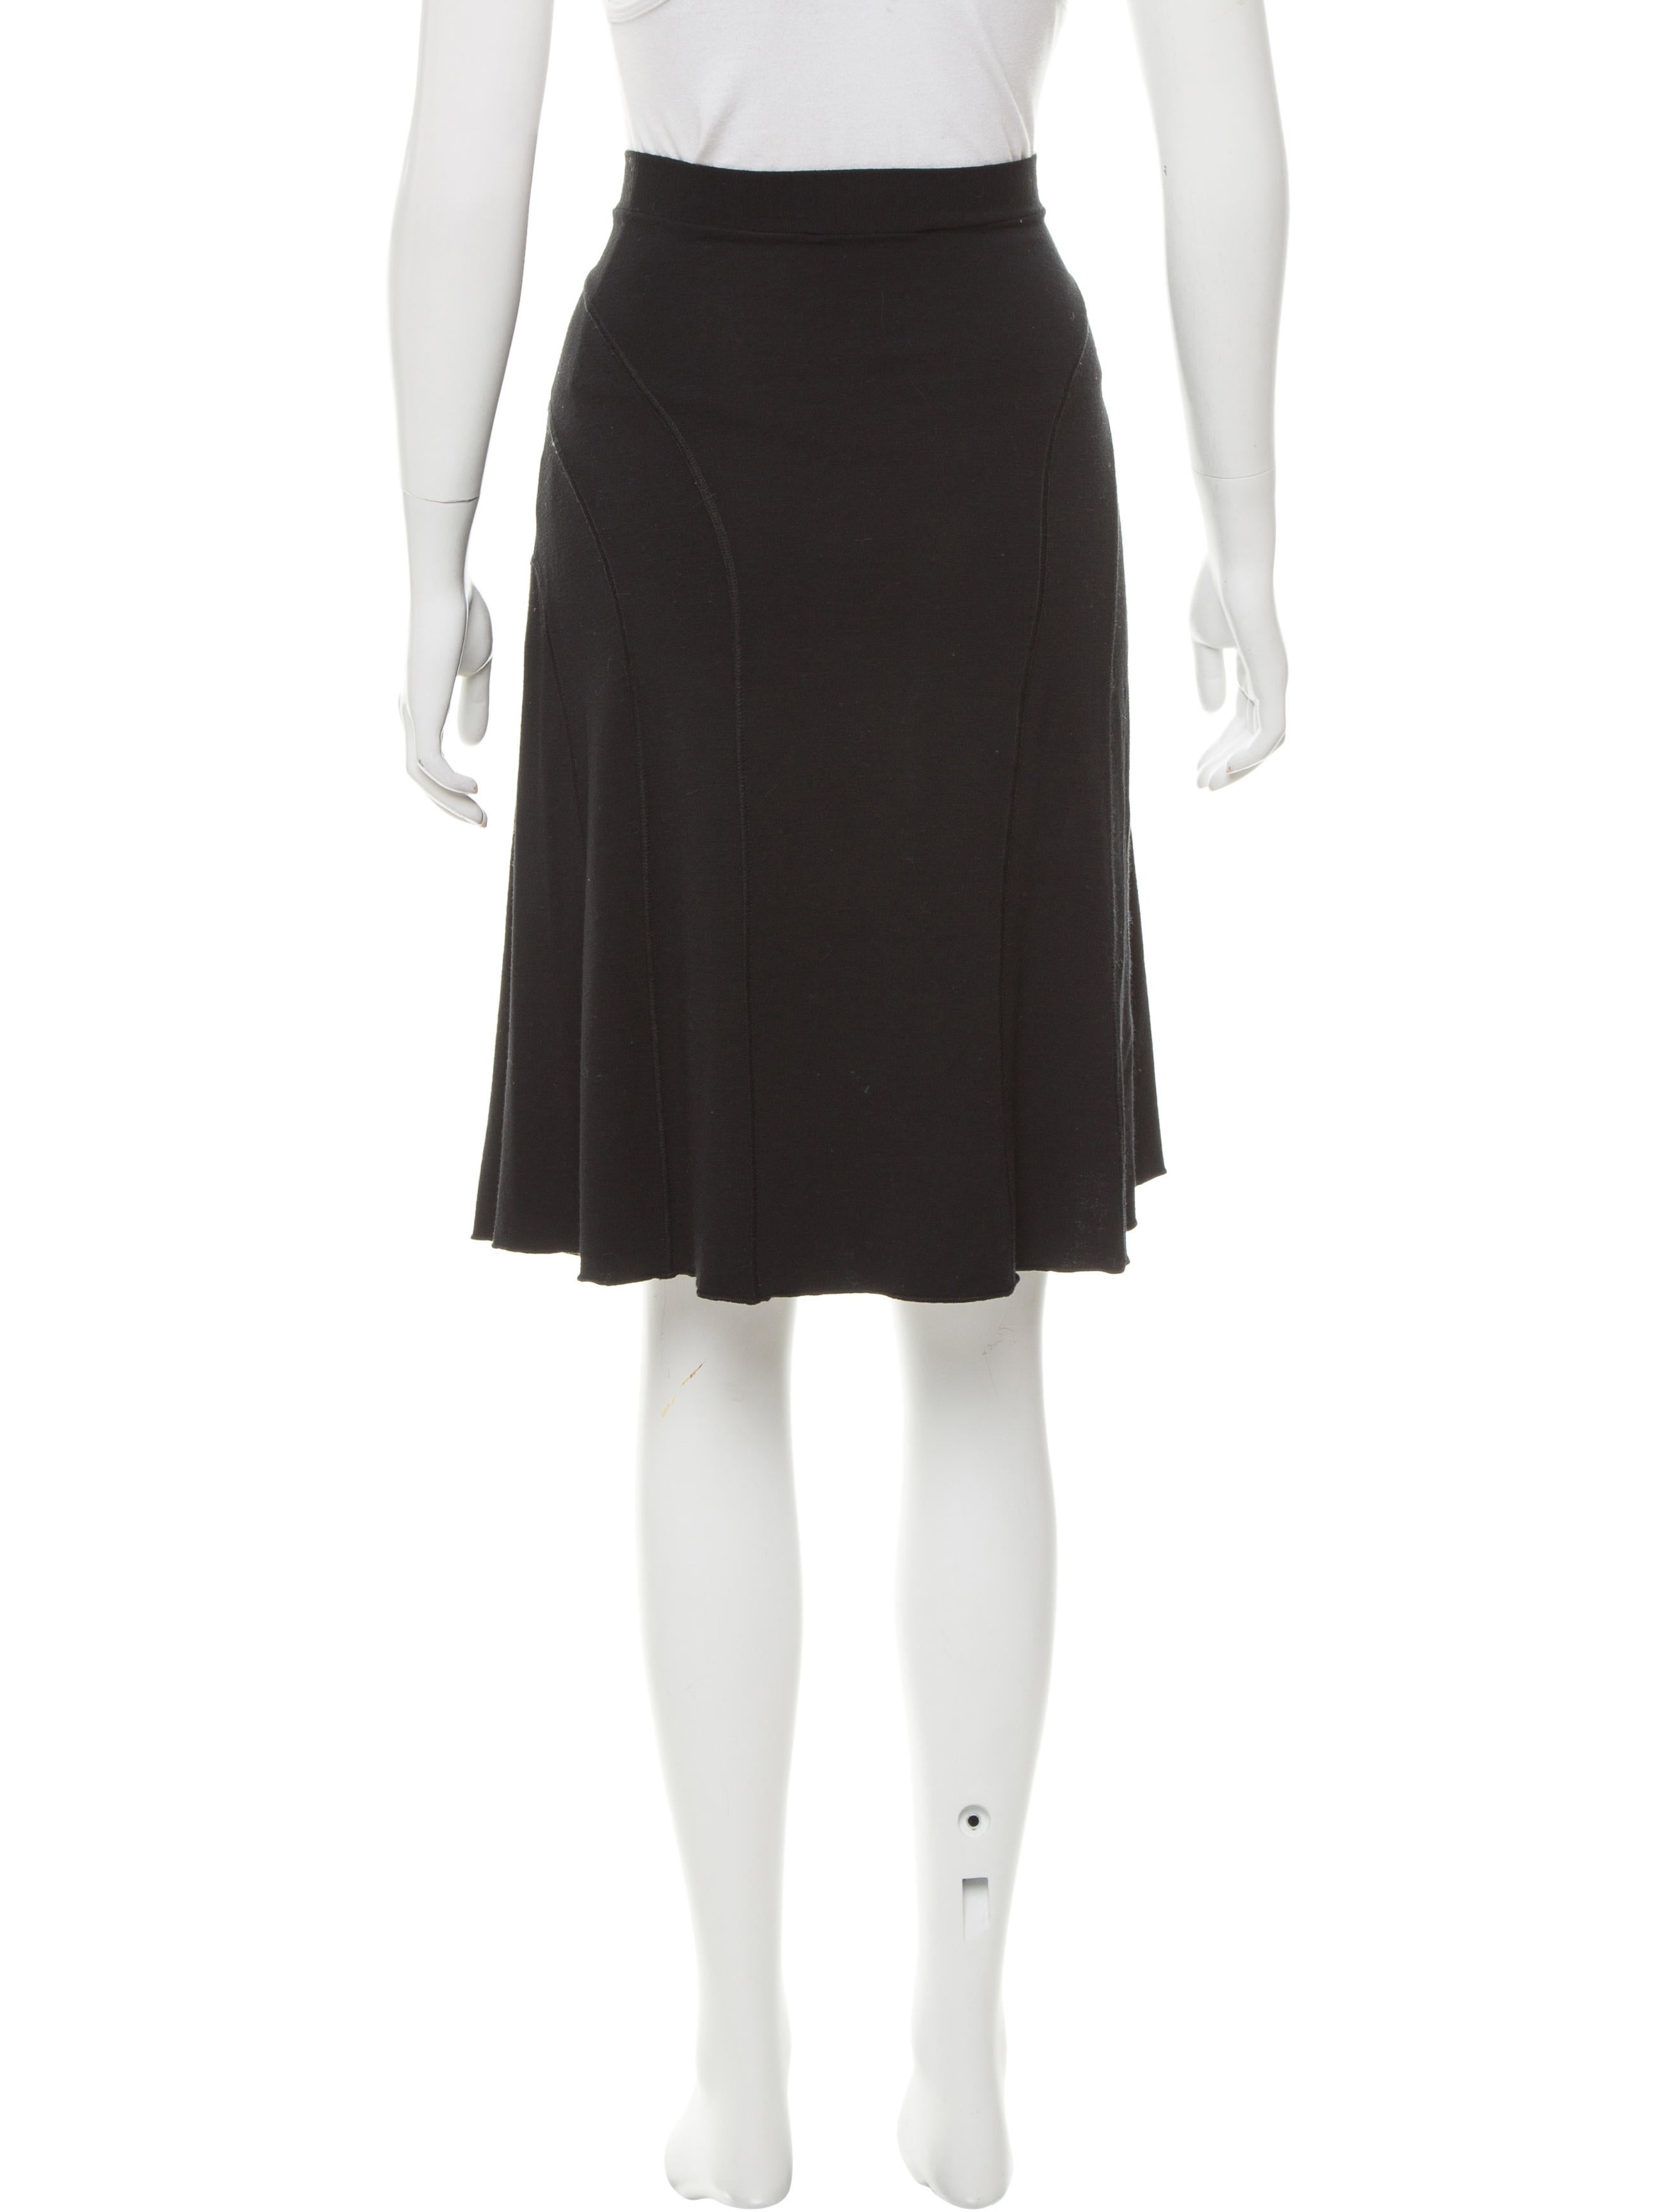 Mid-length Skirts: Free Shipping on orders over $45 at gusajigadexe.cf - Your Online Skirts Store! Get 5% in rewards with Club O! skip to main content. Registries Gift Cards. Ivanka Trump Womens A-Line Skirt Matte Jersey Above Knee. Quick View $ 99 - $